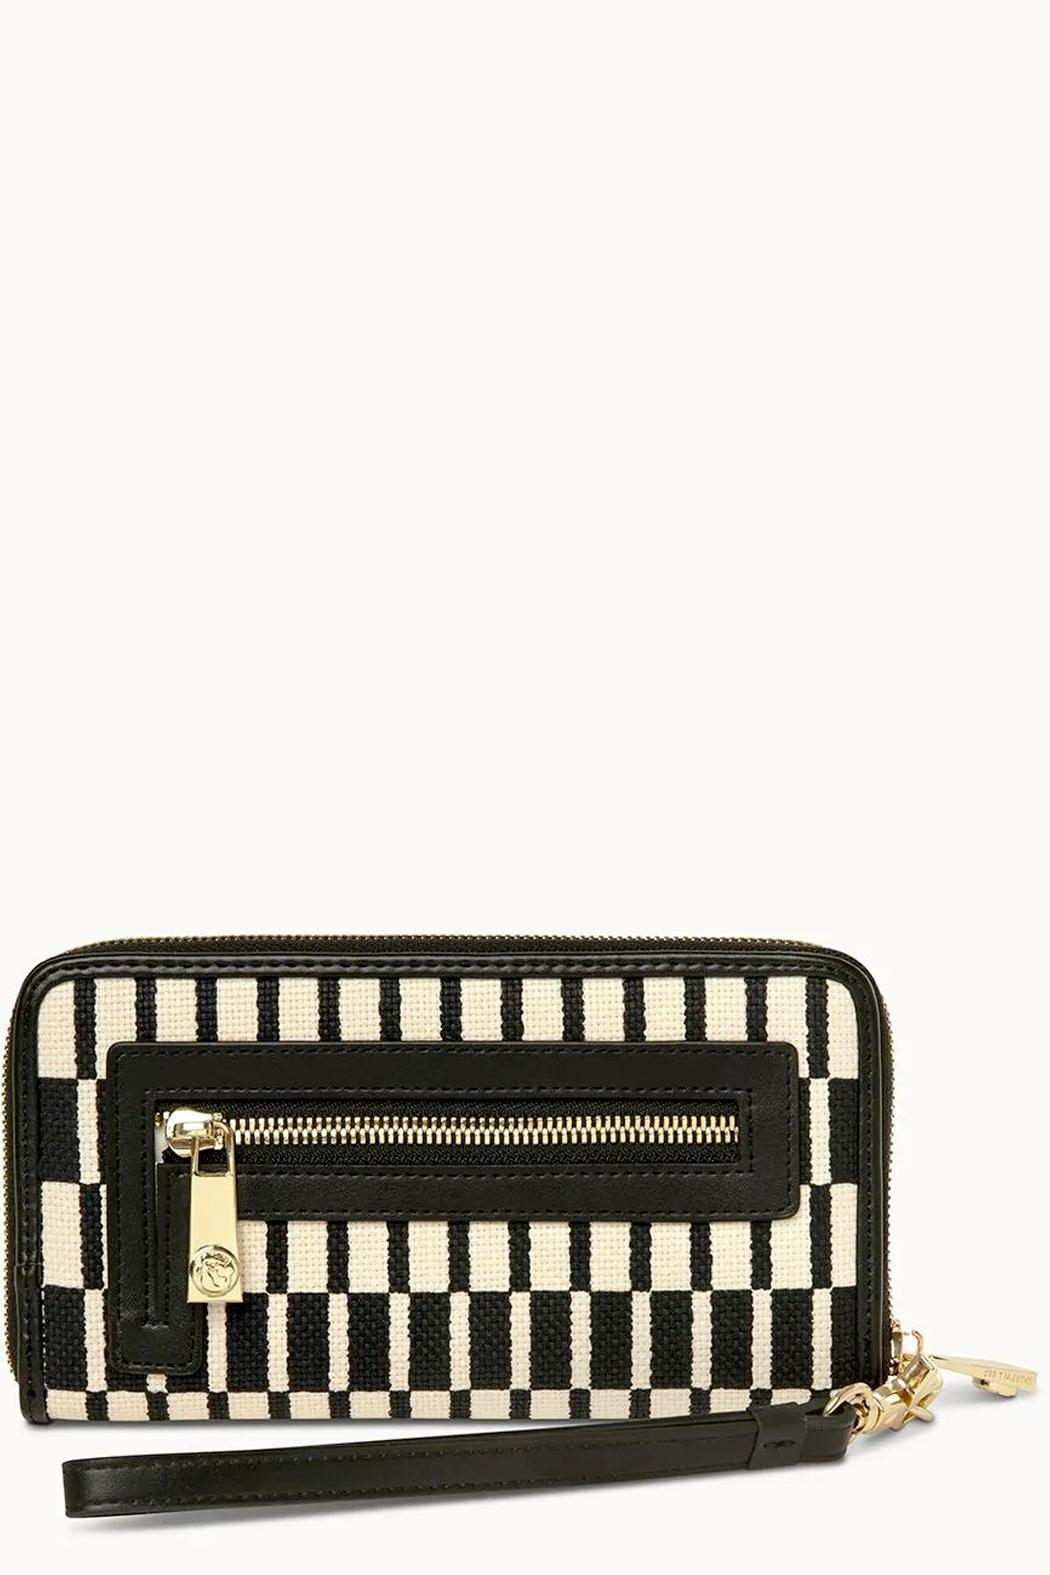 Spartina 449 West-Bluff 449 Wallet - Front Full Image